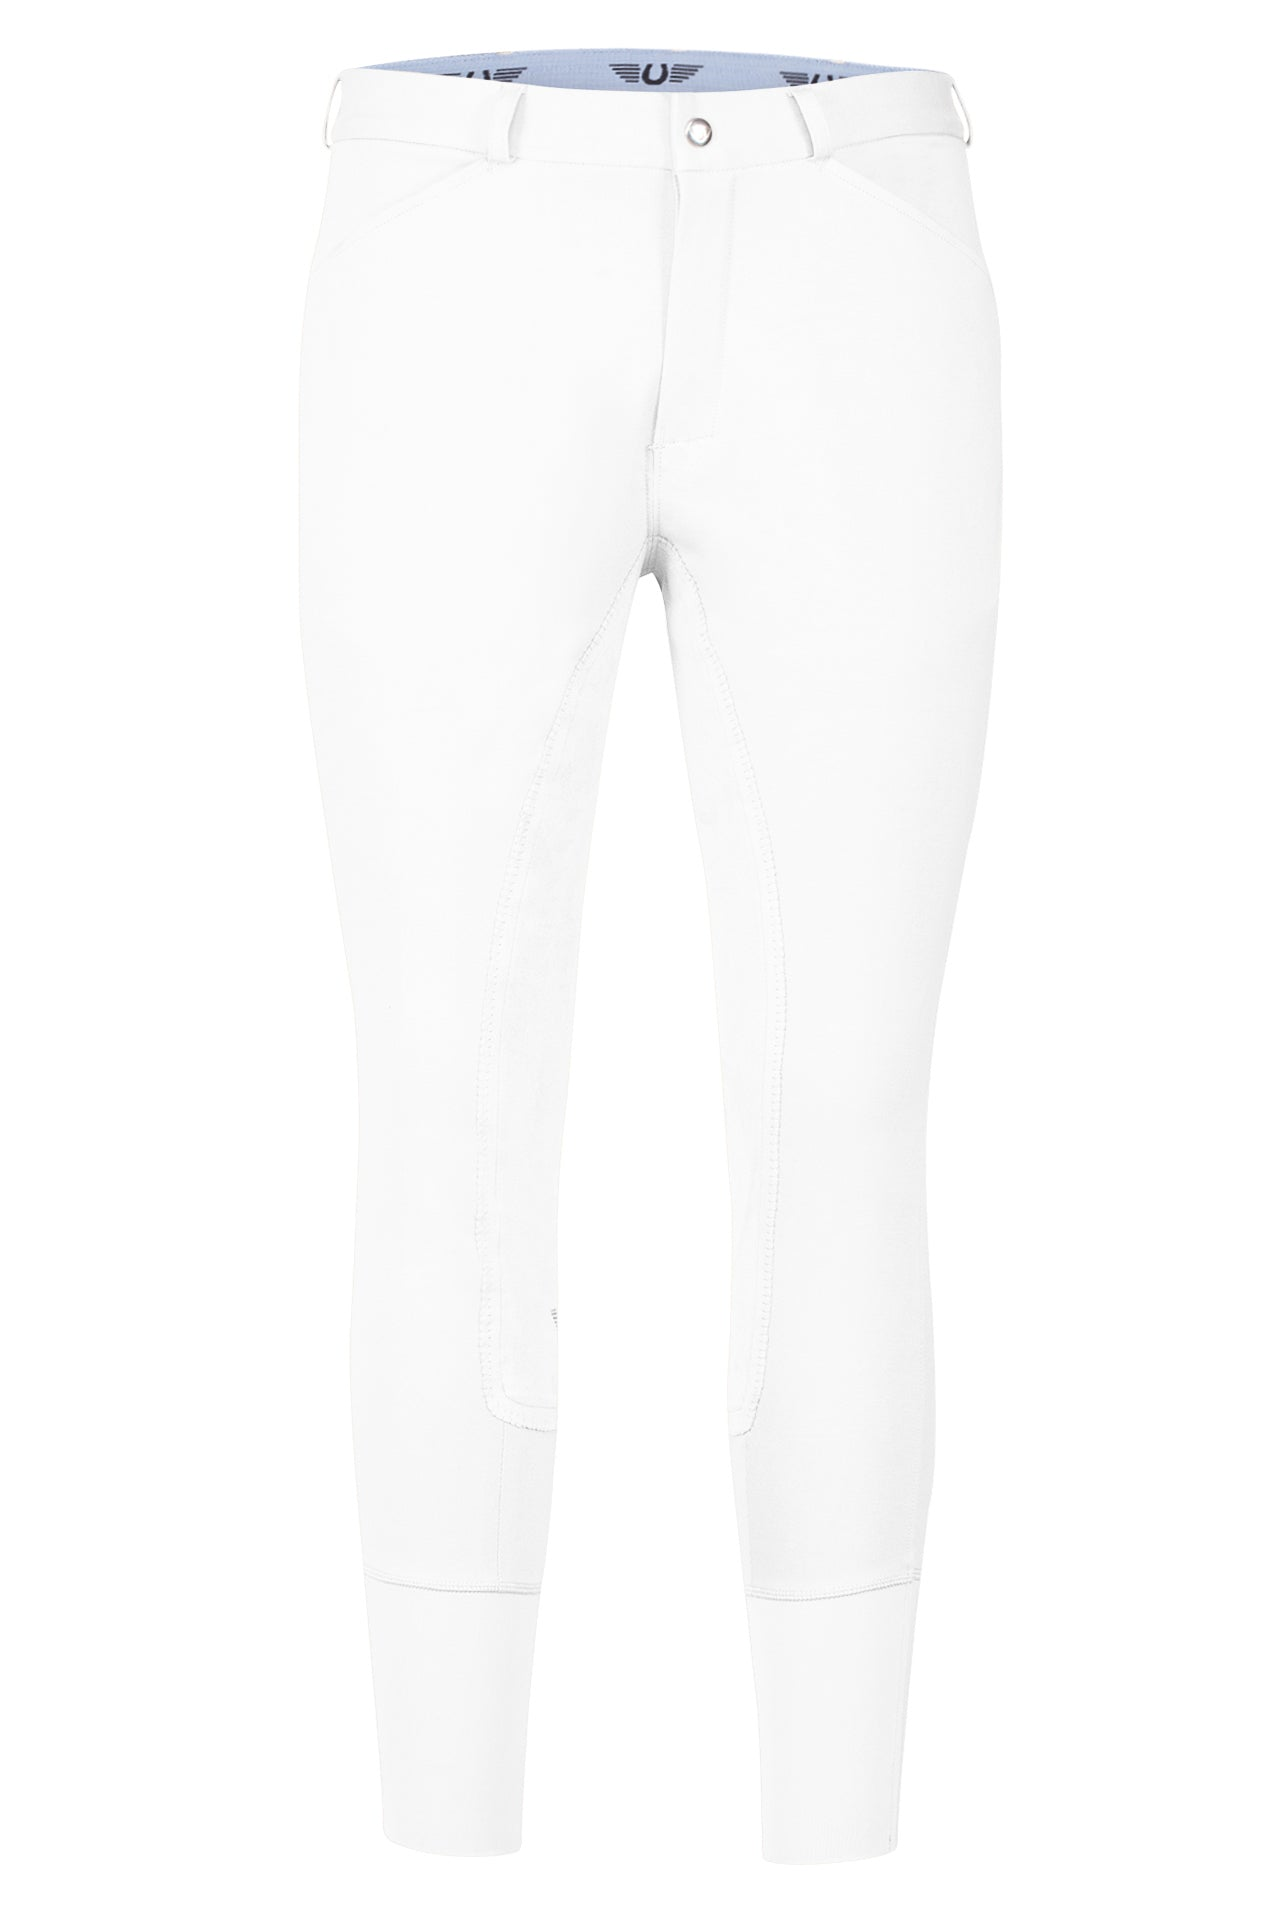 TuffRider Men's Full Seat Patrol Breeches_1288